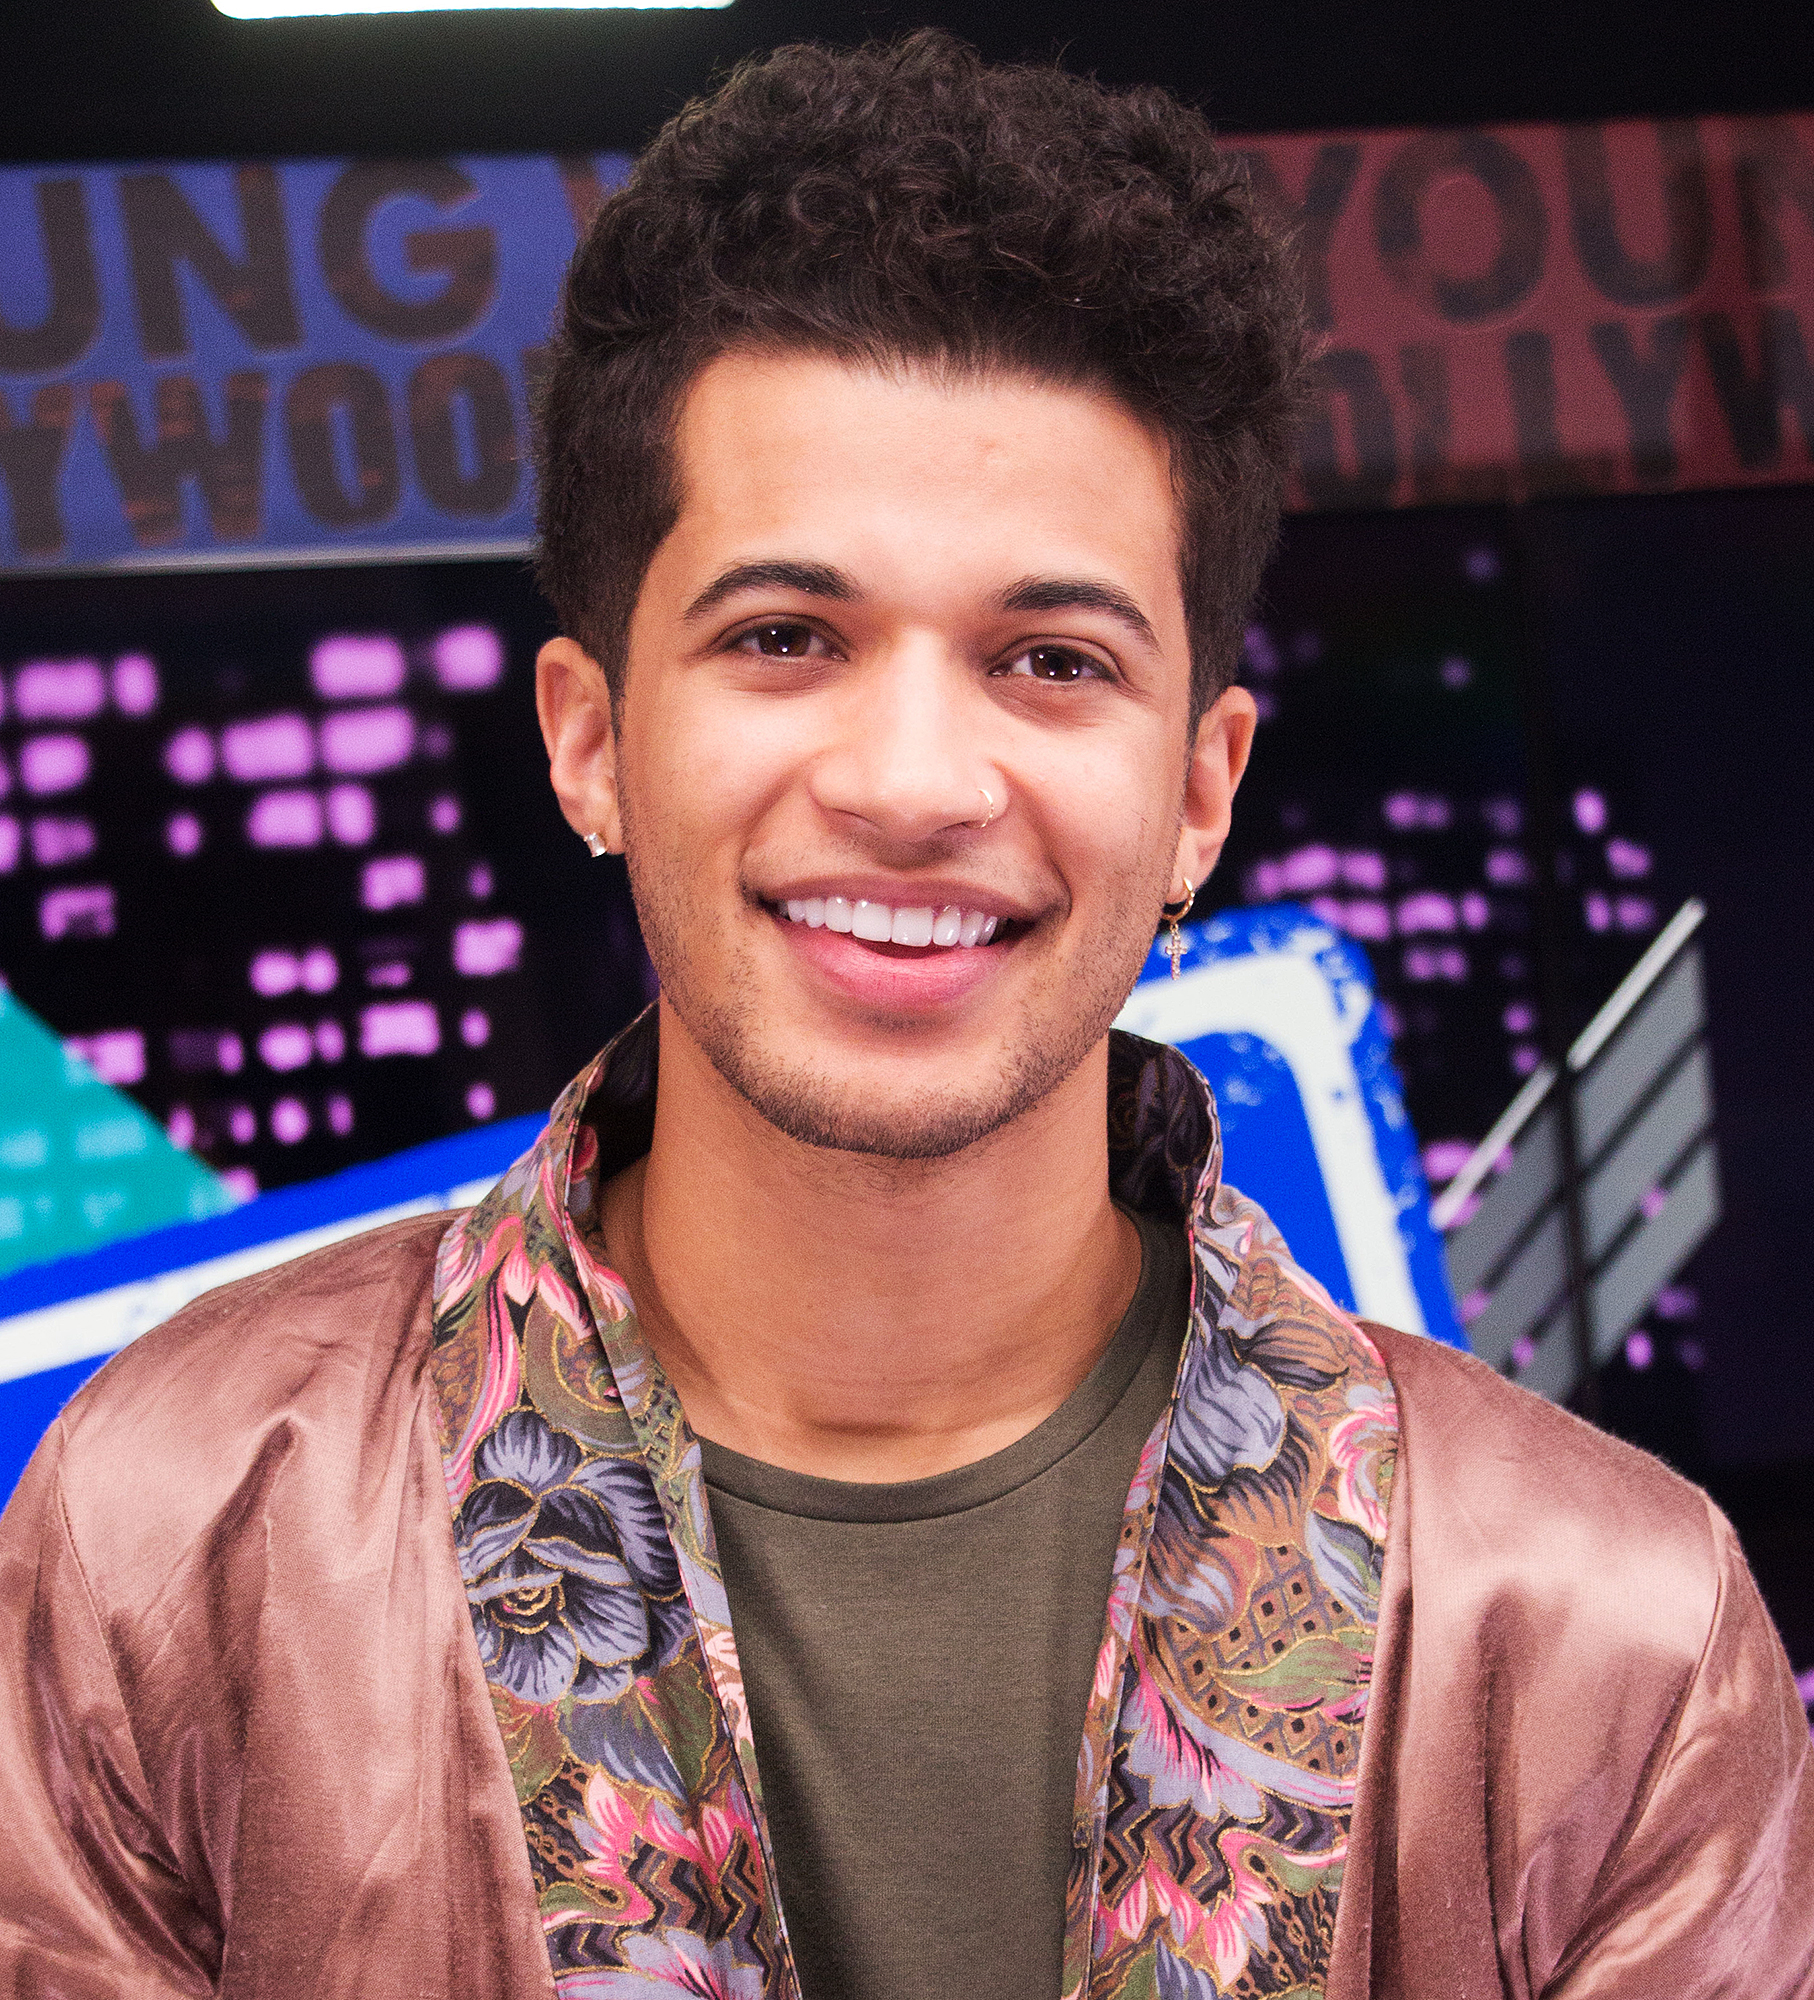 jordan-fisher-To-All-the-Boys-I've-Loved-Before-sequel - Rent Live star Jordan Fisher has joined the cast as John Ambrose, one of Lara Jean's letter recipients. Jordan Burtchett played the part in a mid-credit scene in the first film.